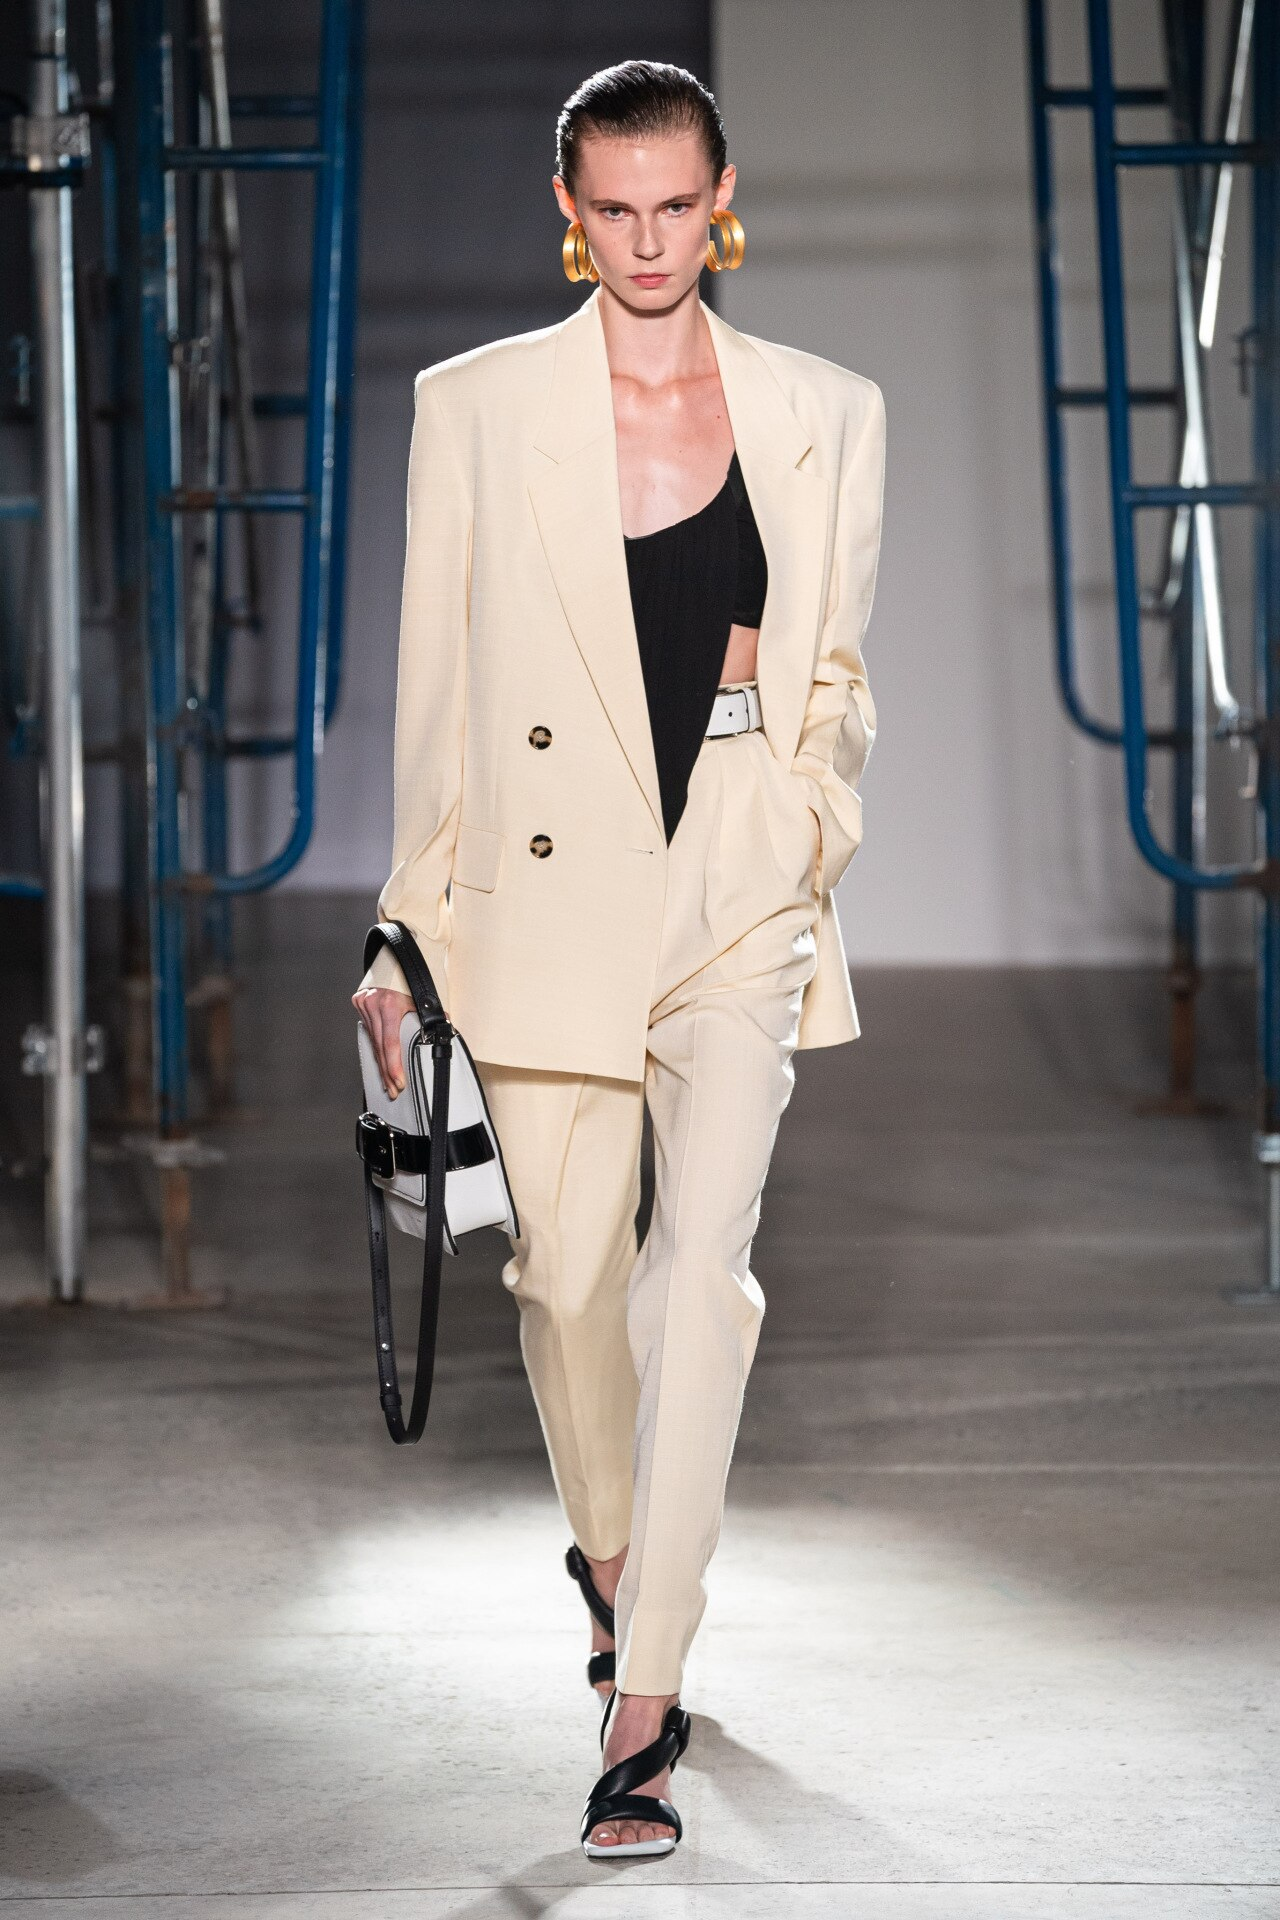 Proenza Schouler ready-to-wear spring/summer 2020